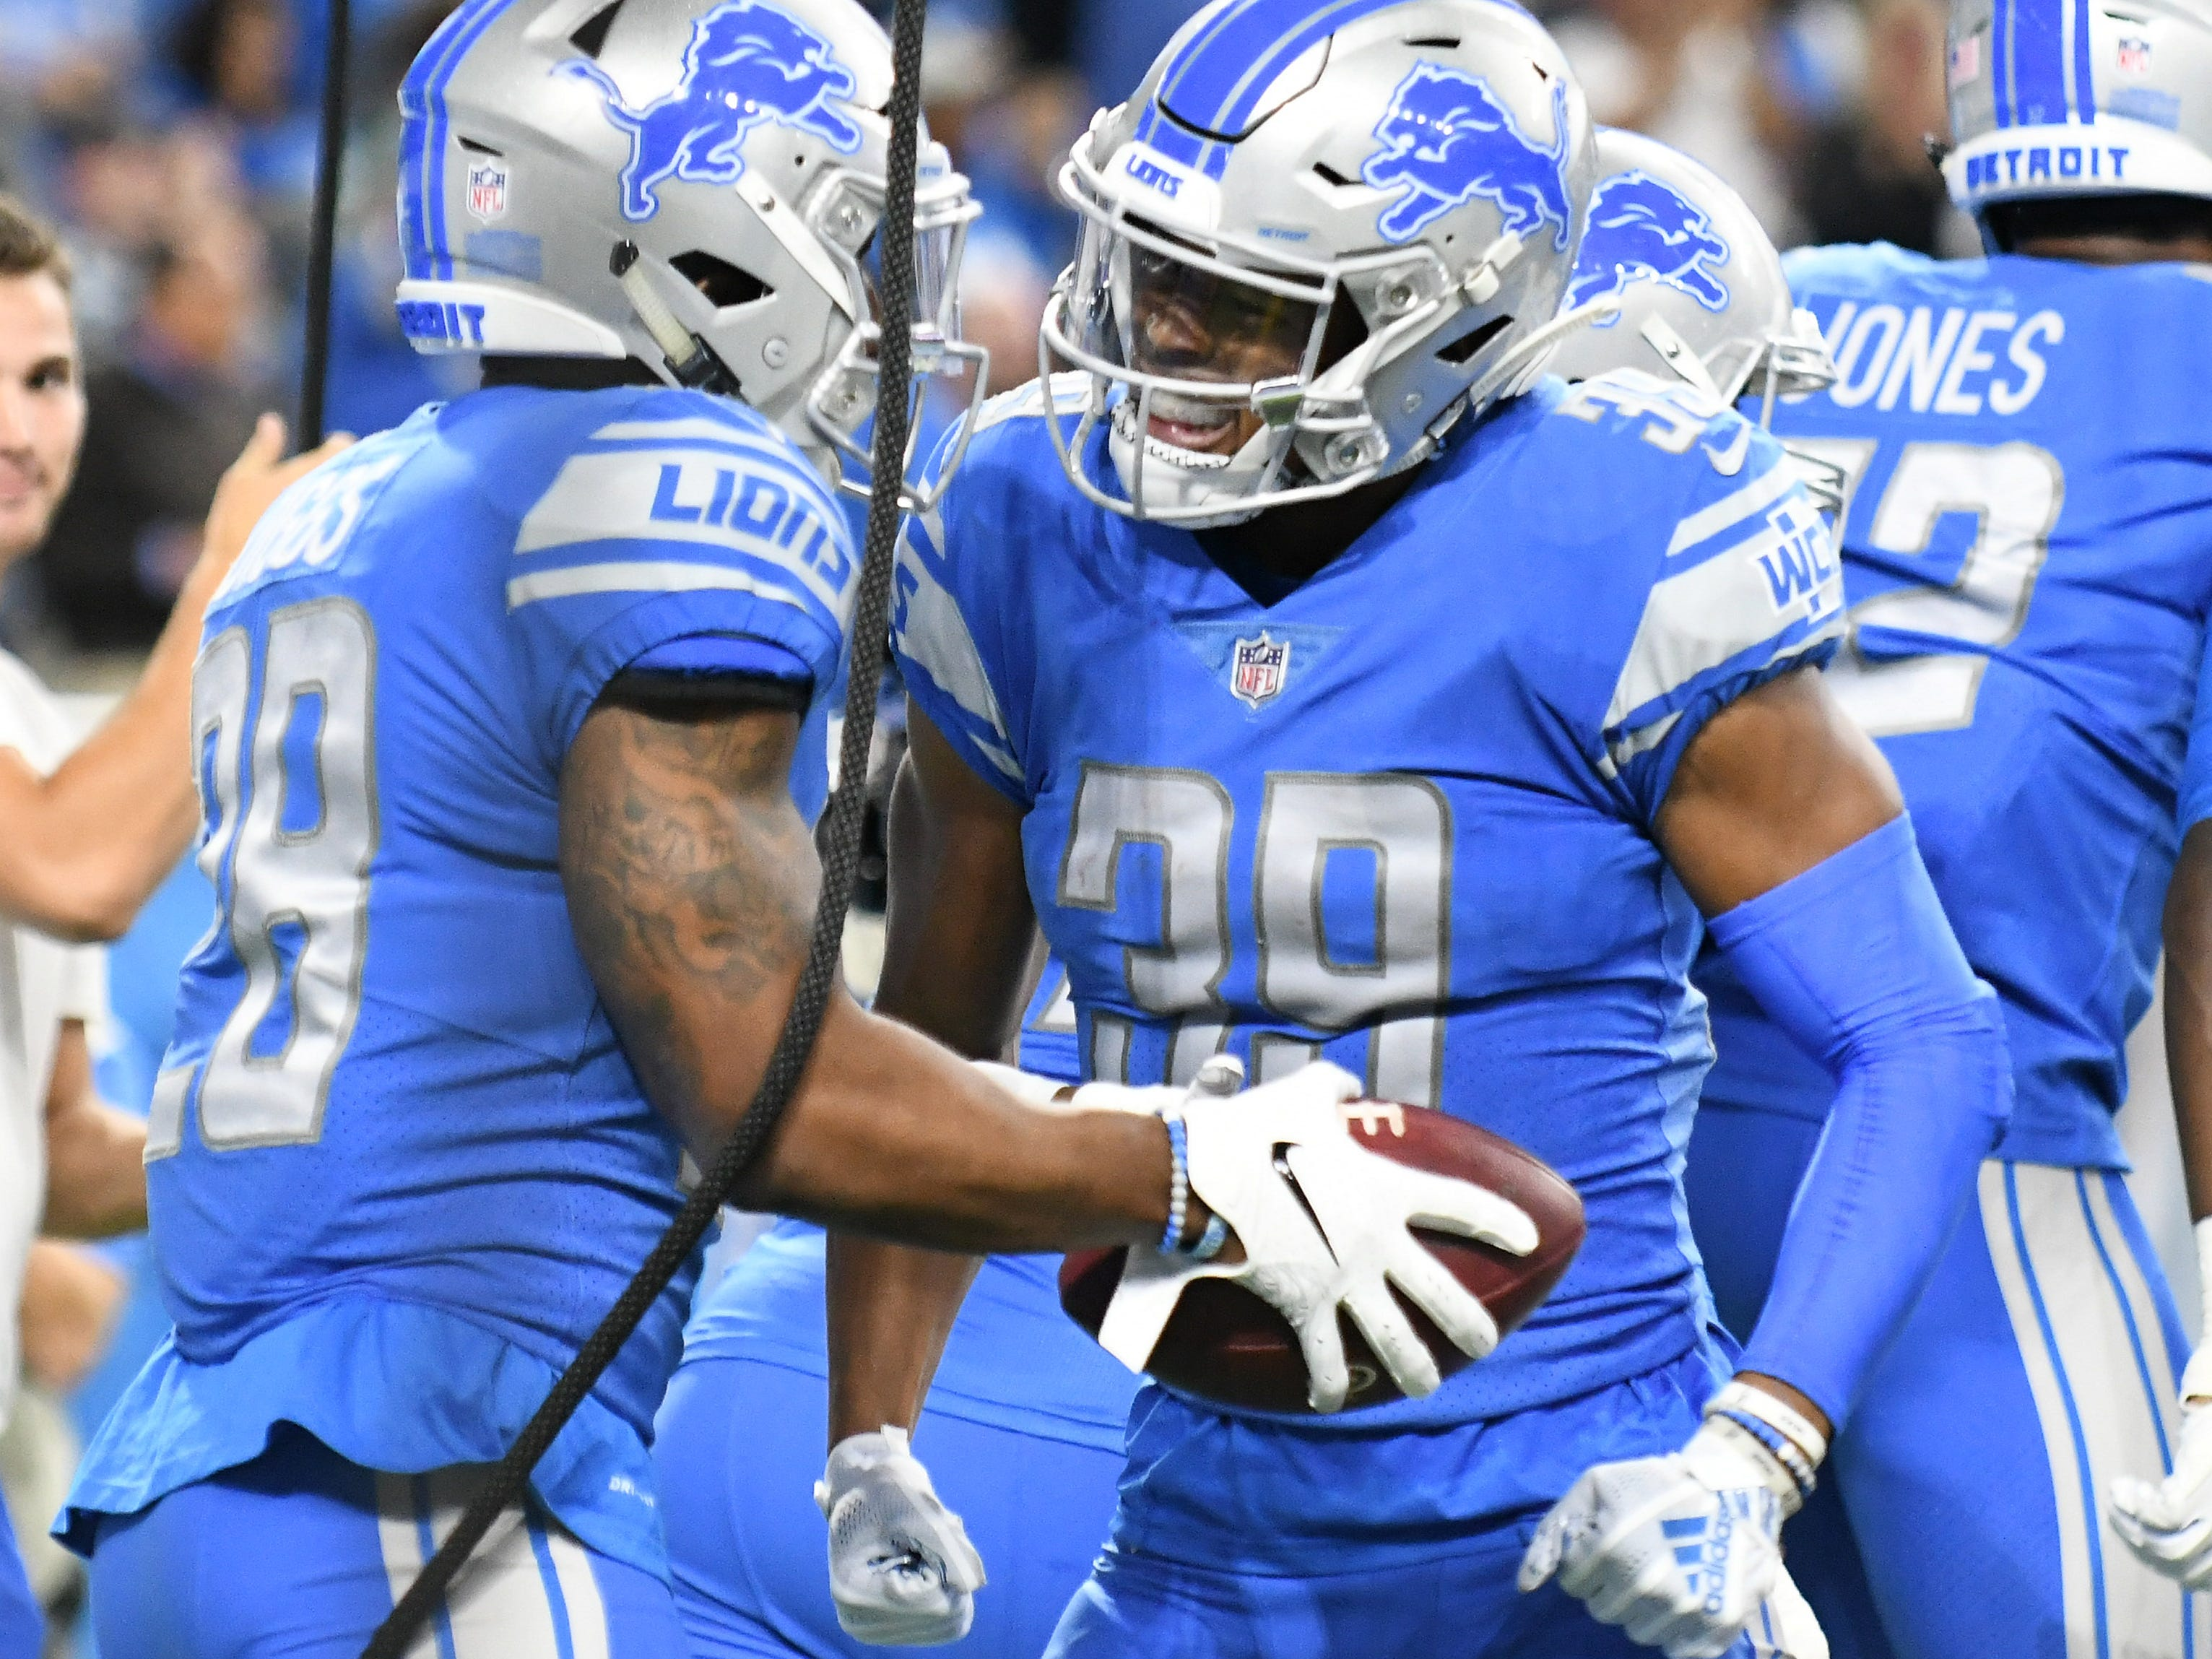 Lions defensive back Quandre Diggs, left, celebrates his touchdown with corner back Jamal Agnew, right, in the first quarter.